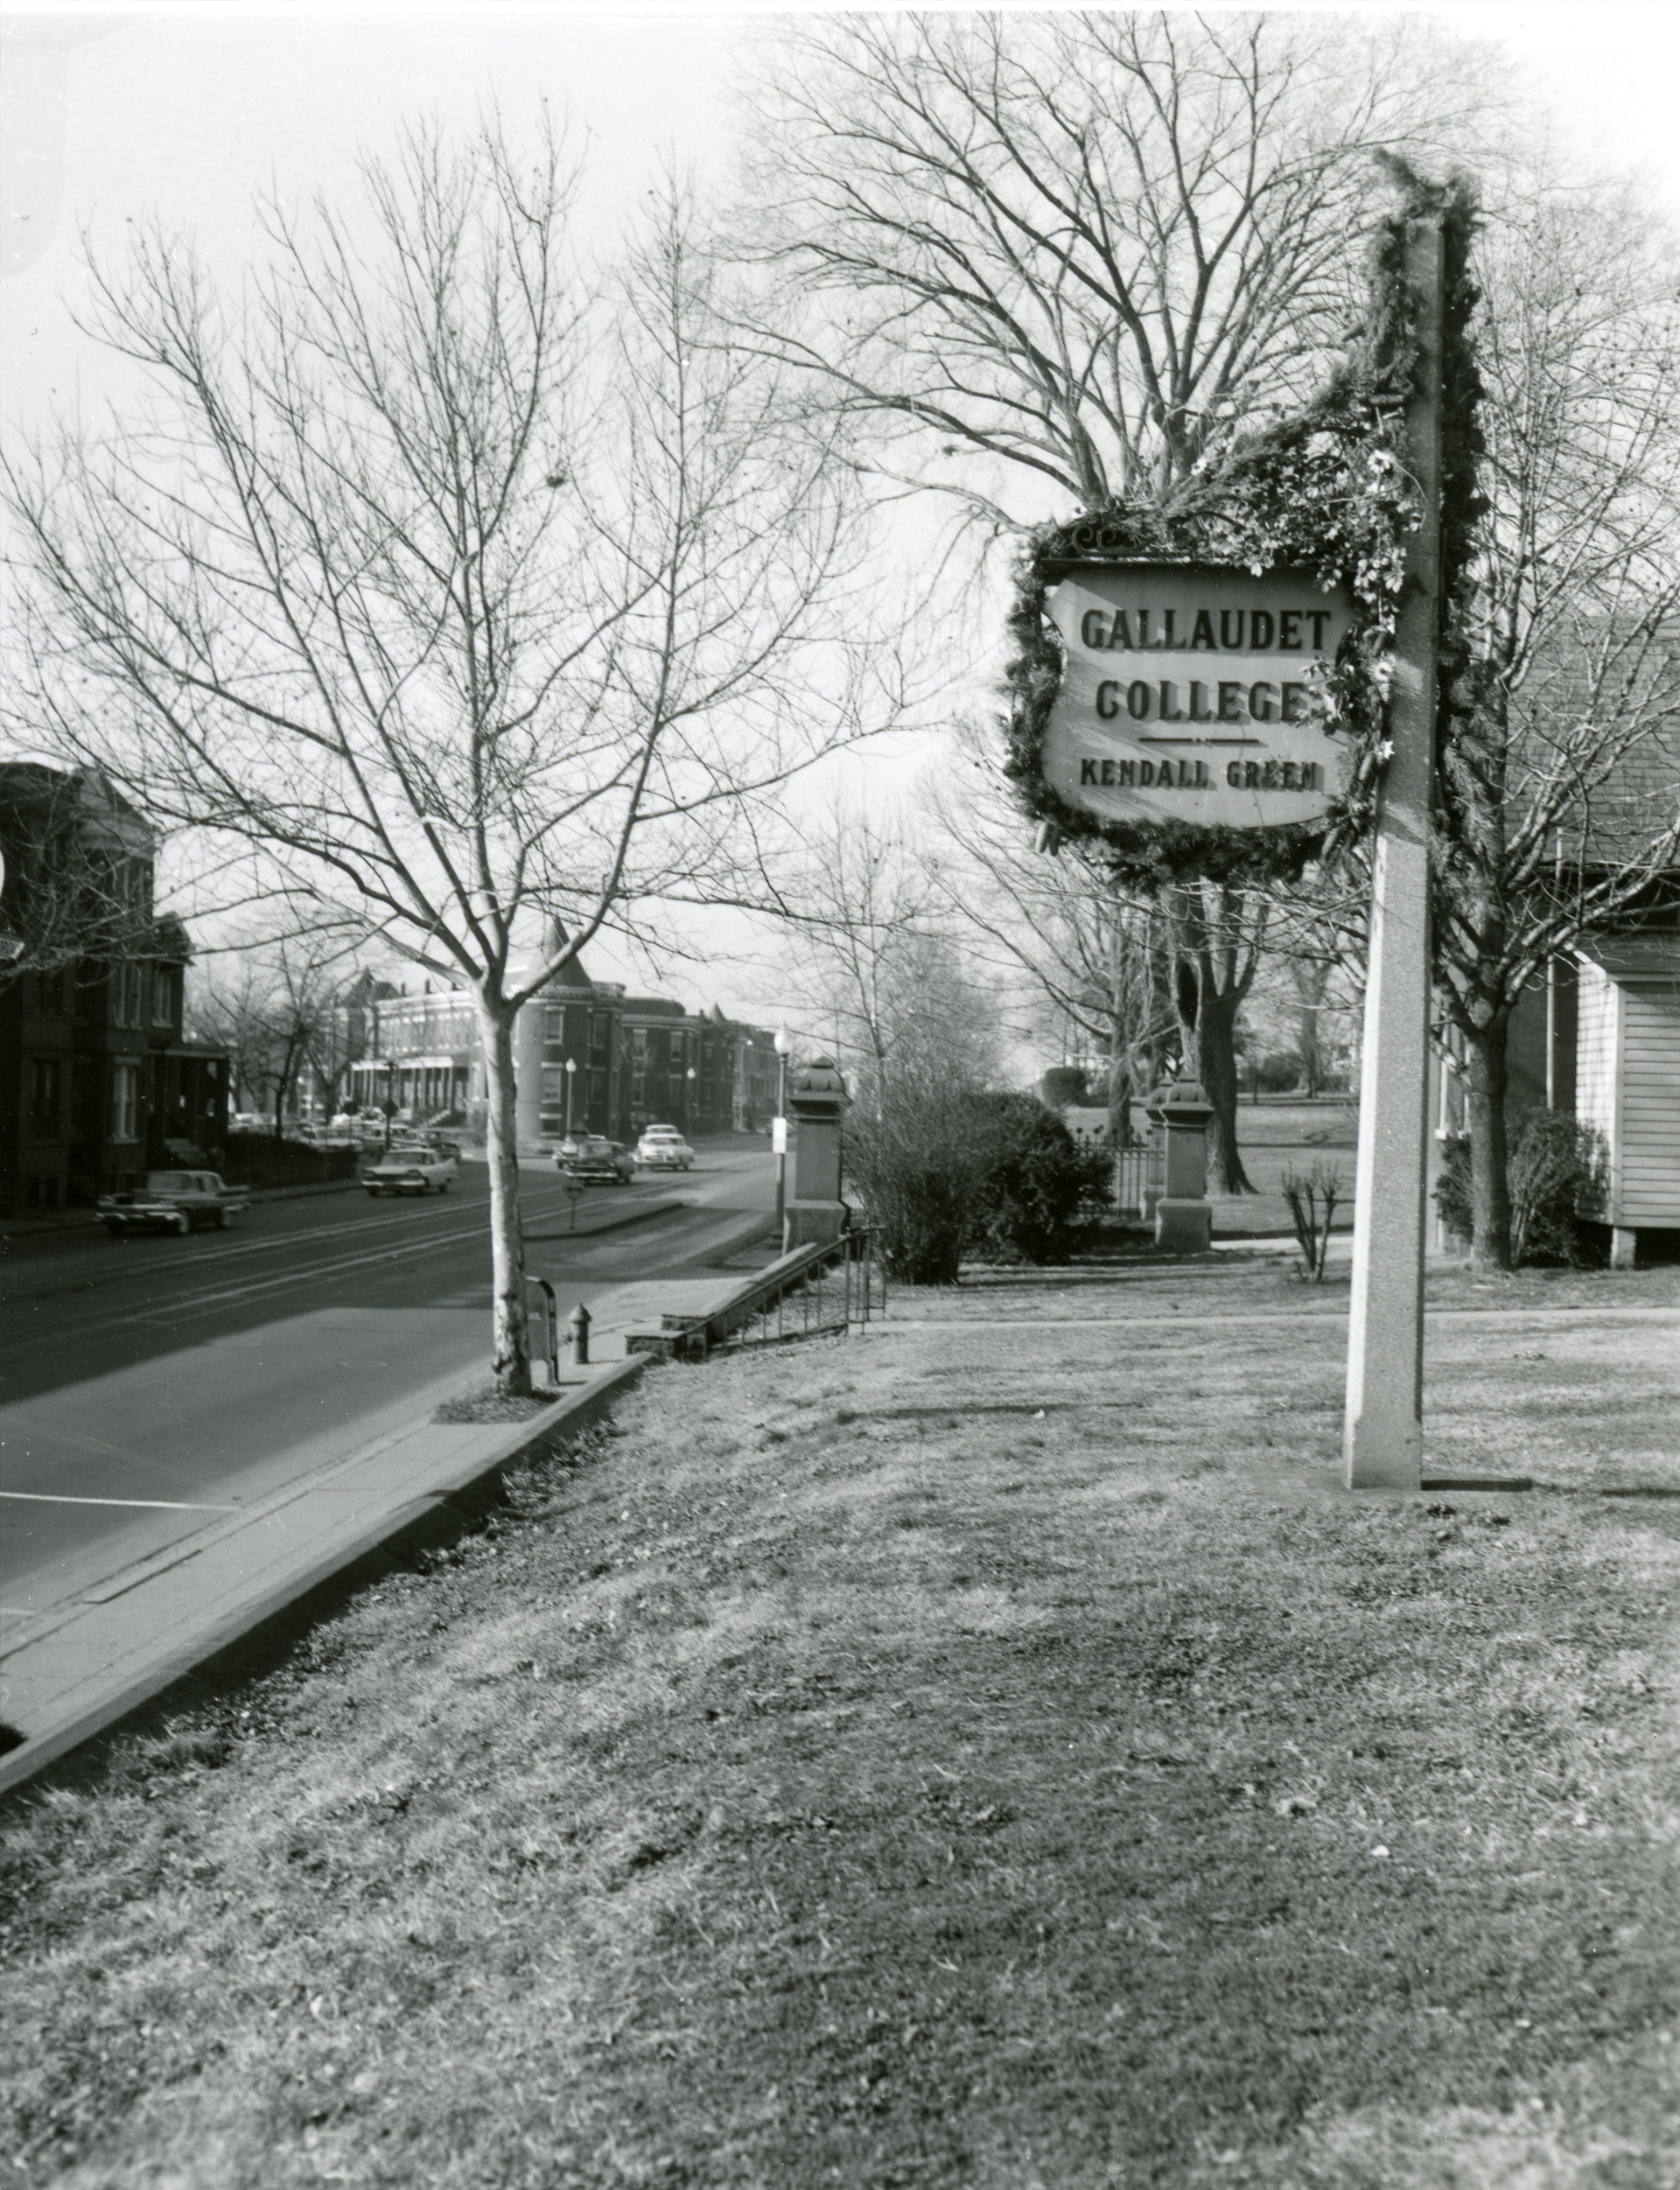 Blk/white photo of old Gallaudet College signage beside Florida Ave, can see the Gate House in the background.